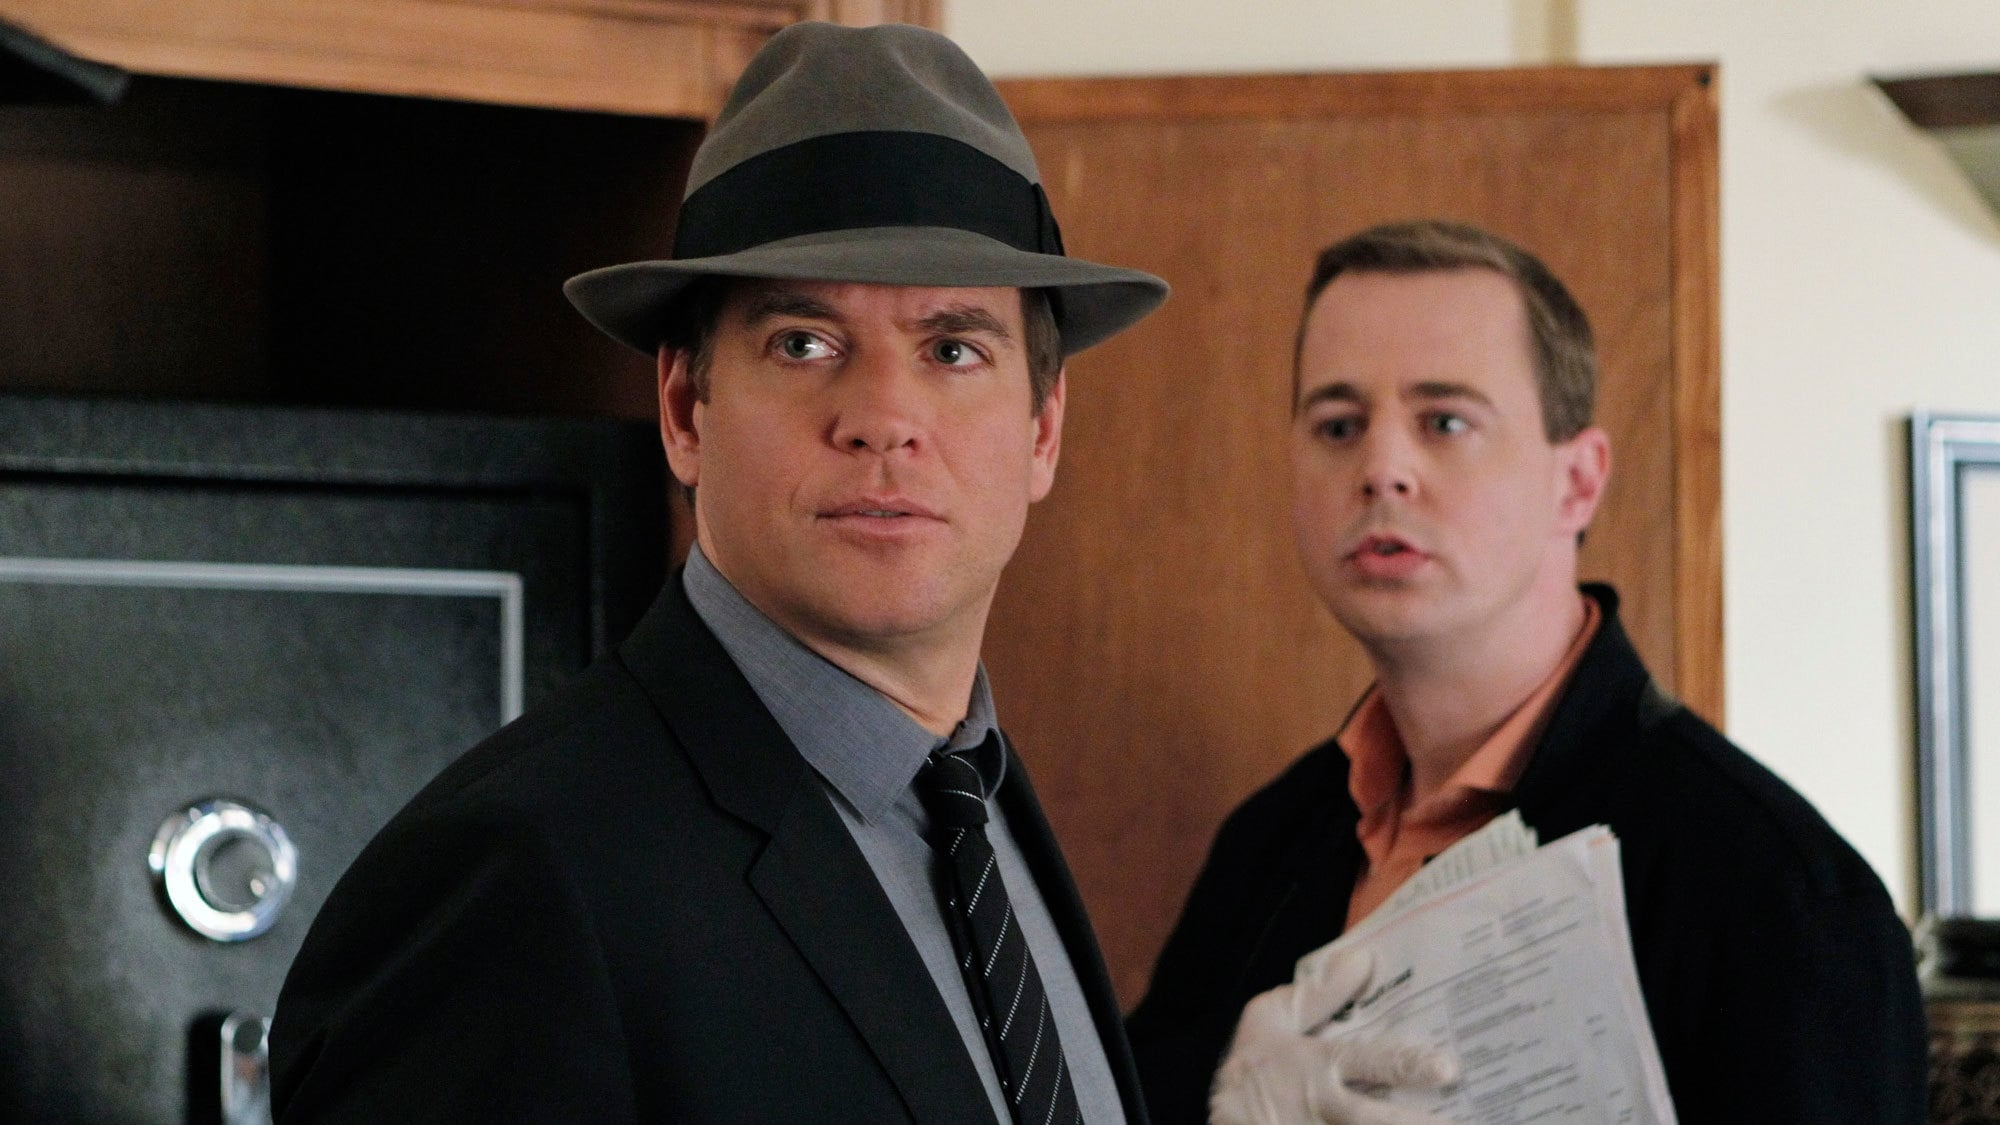 NCIS - Season 11 Episode 16 : Dressed to Kill